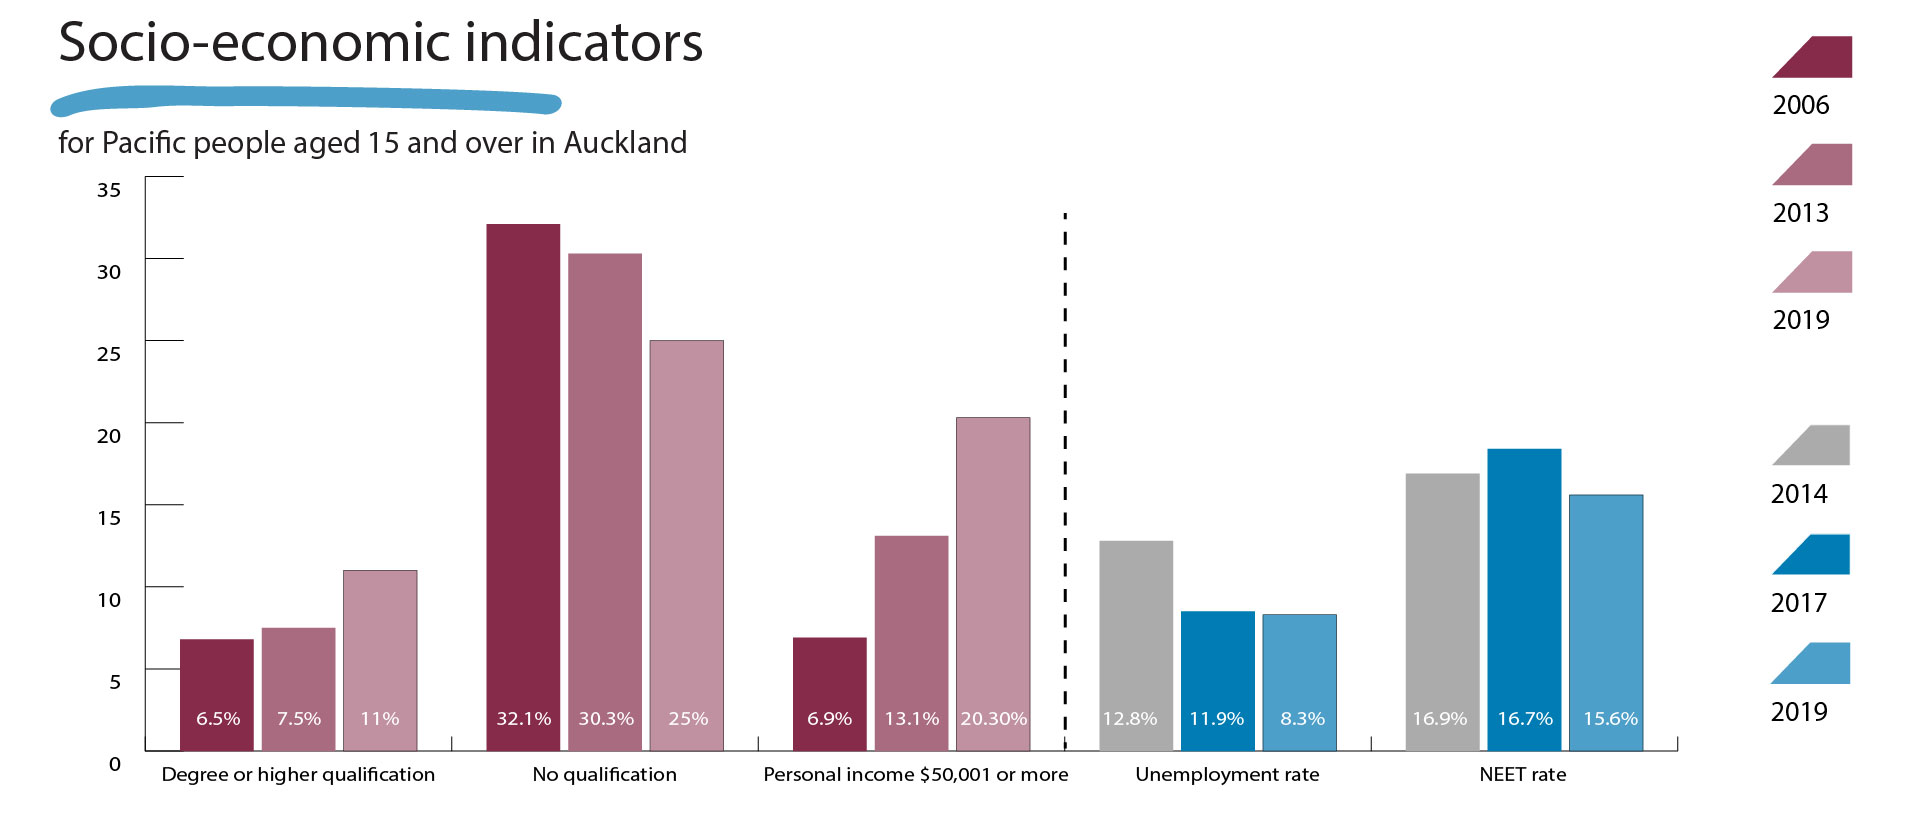 Graph showing the socio-economic indicators for Pacific people aged 15 and over.